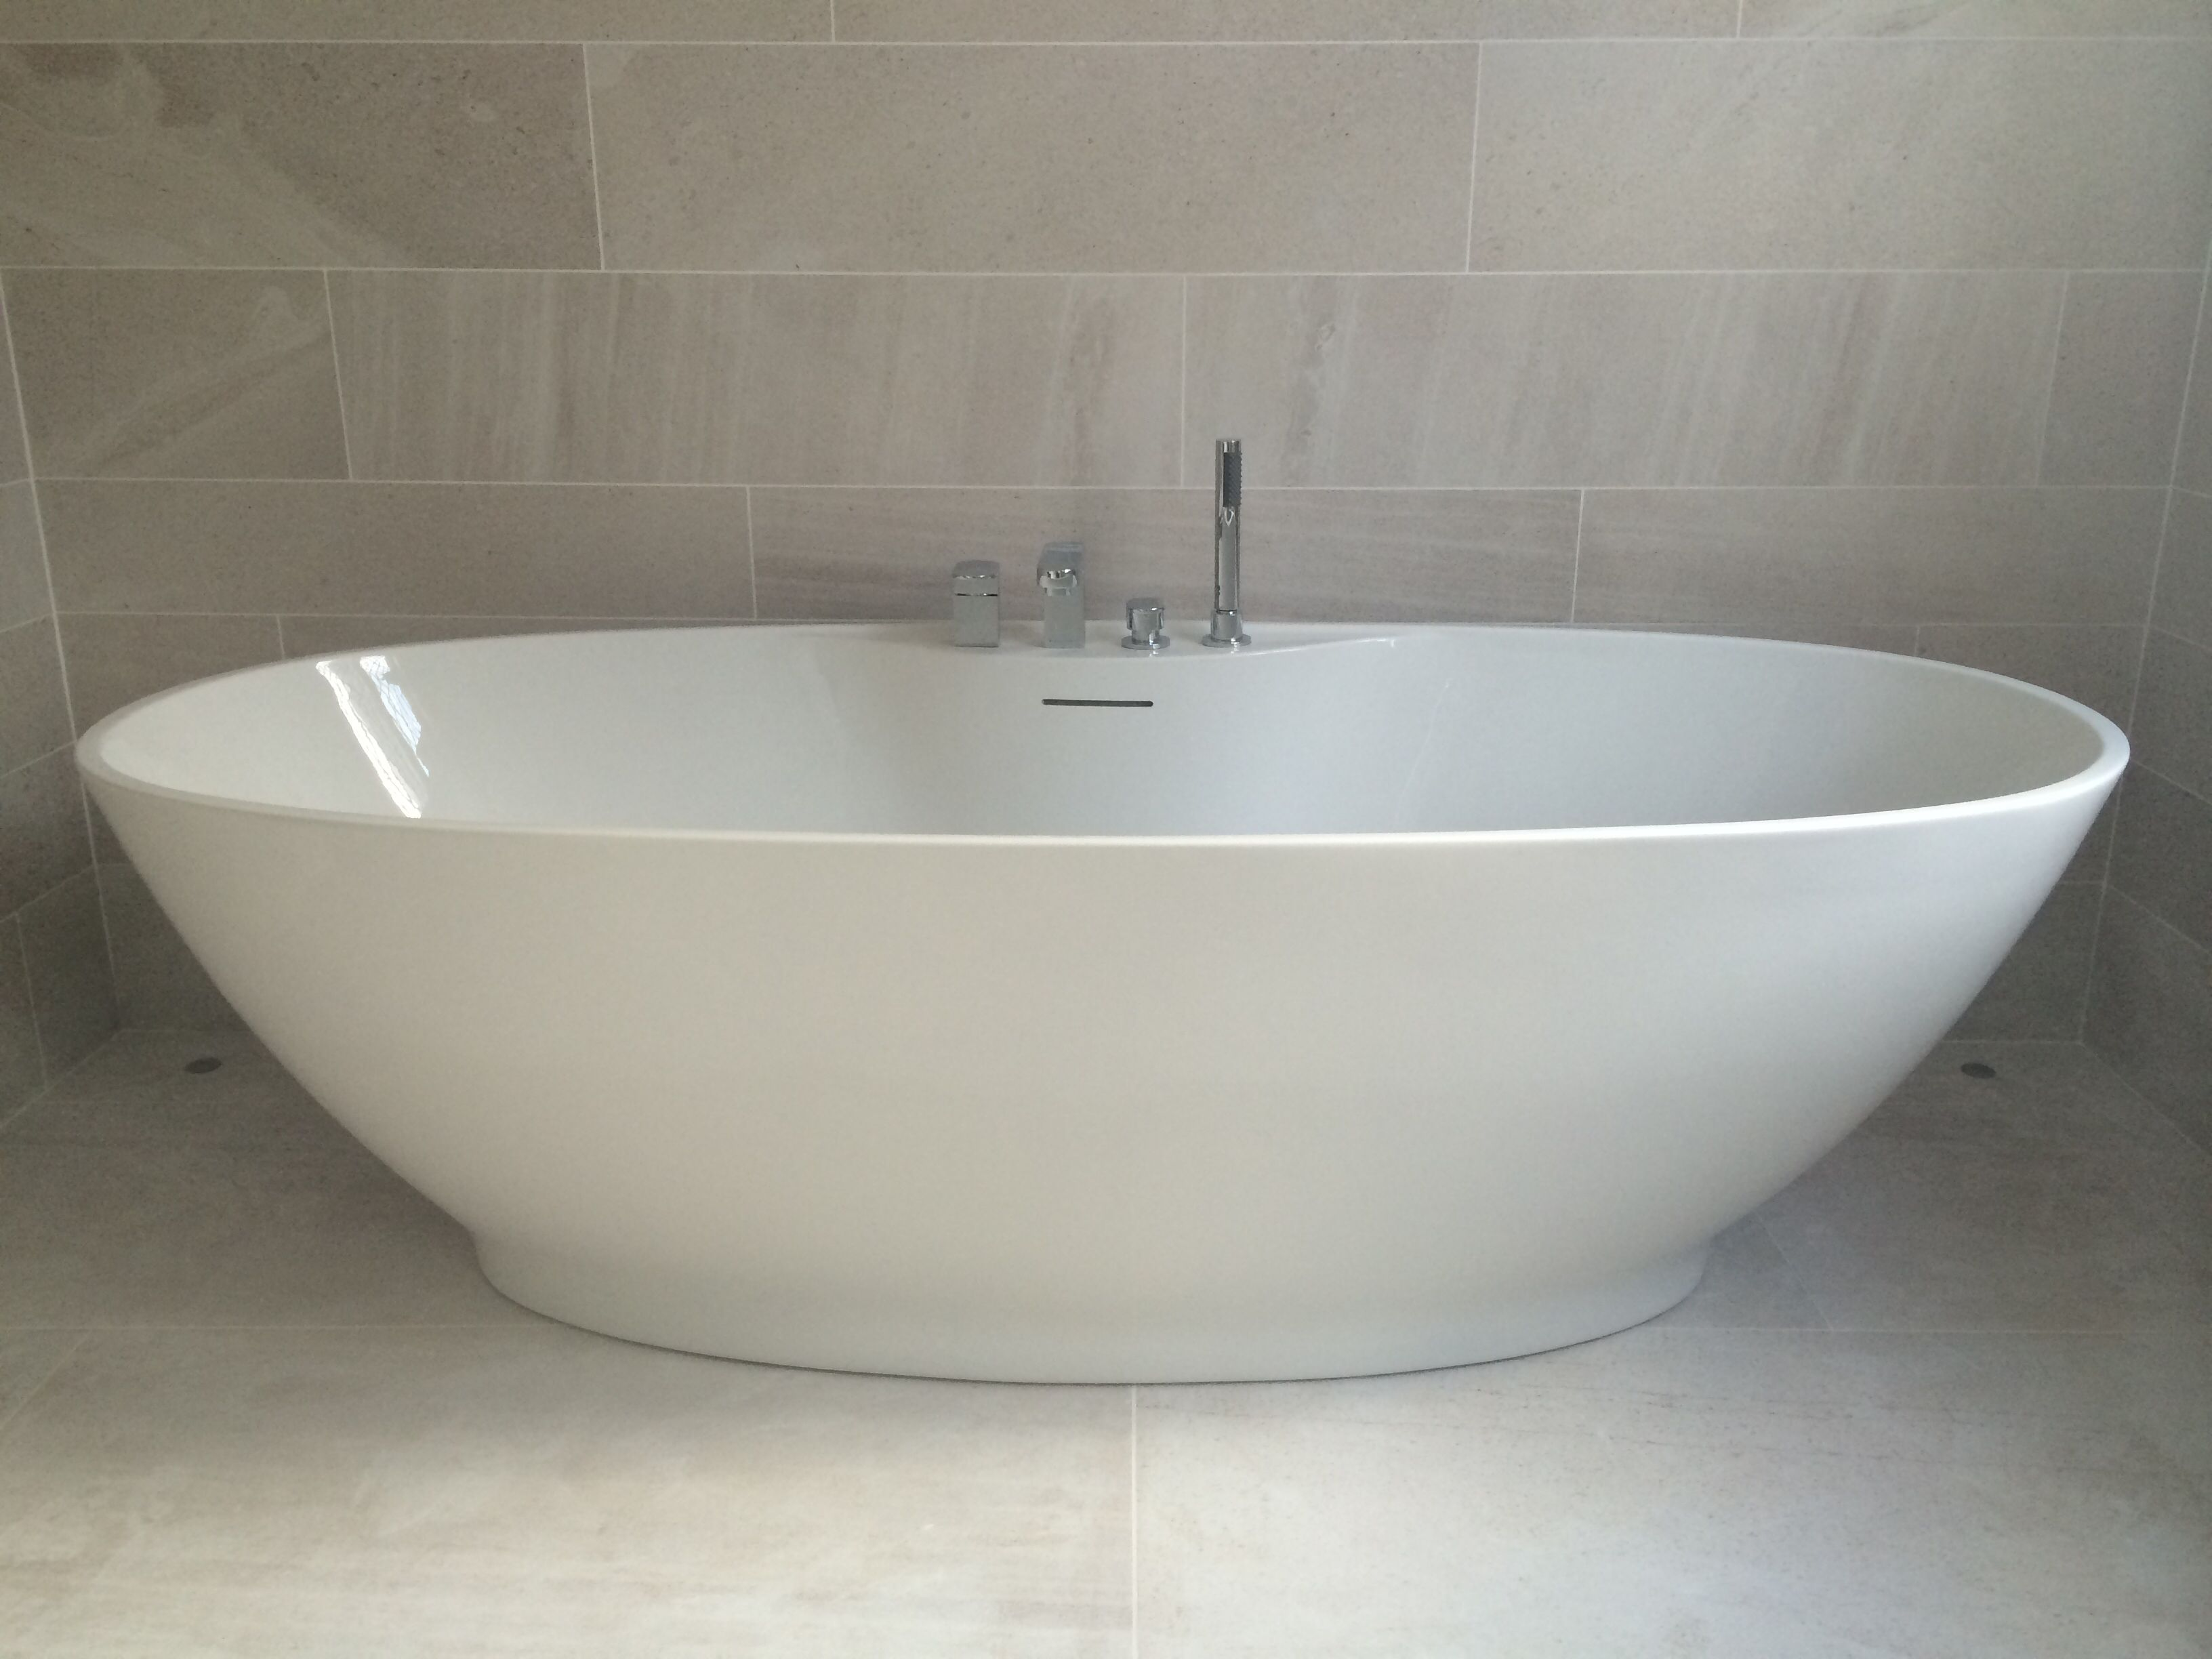 Bathroom Design And Installation Captivating Simply Stunning Luxury Freestanding Bath Contemporary Installed Inspiration